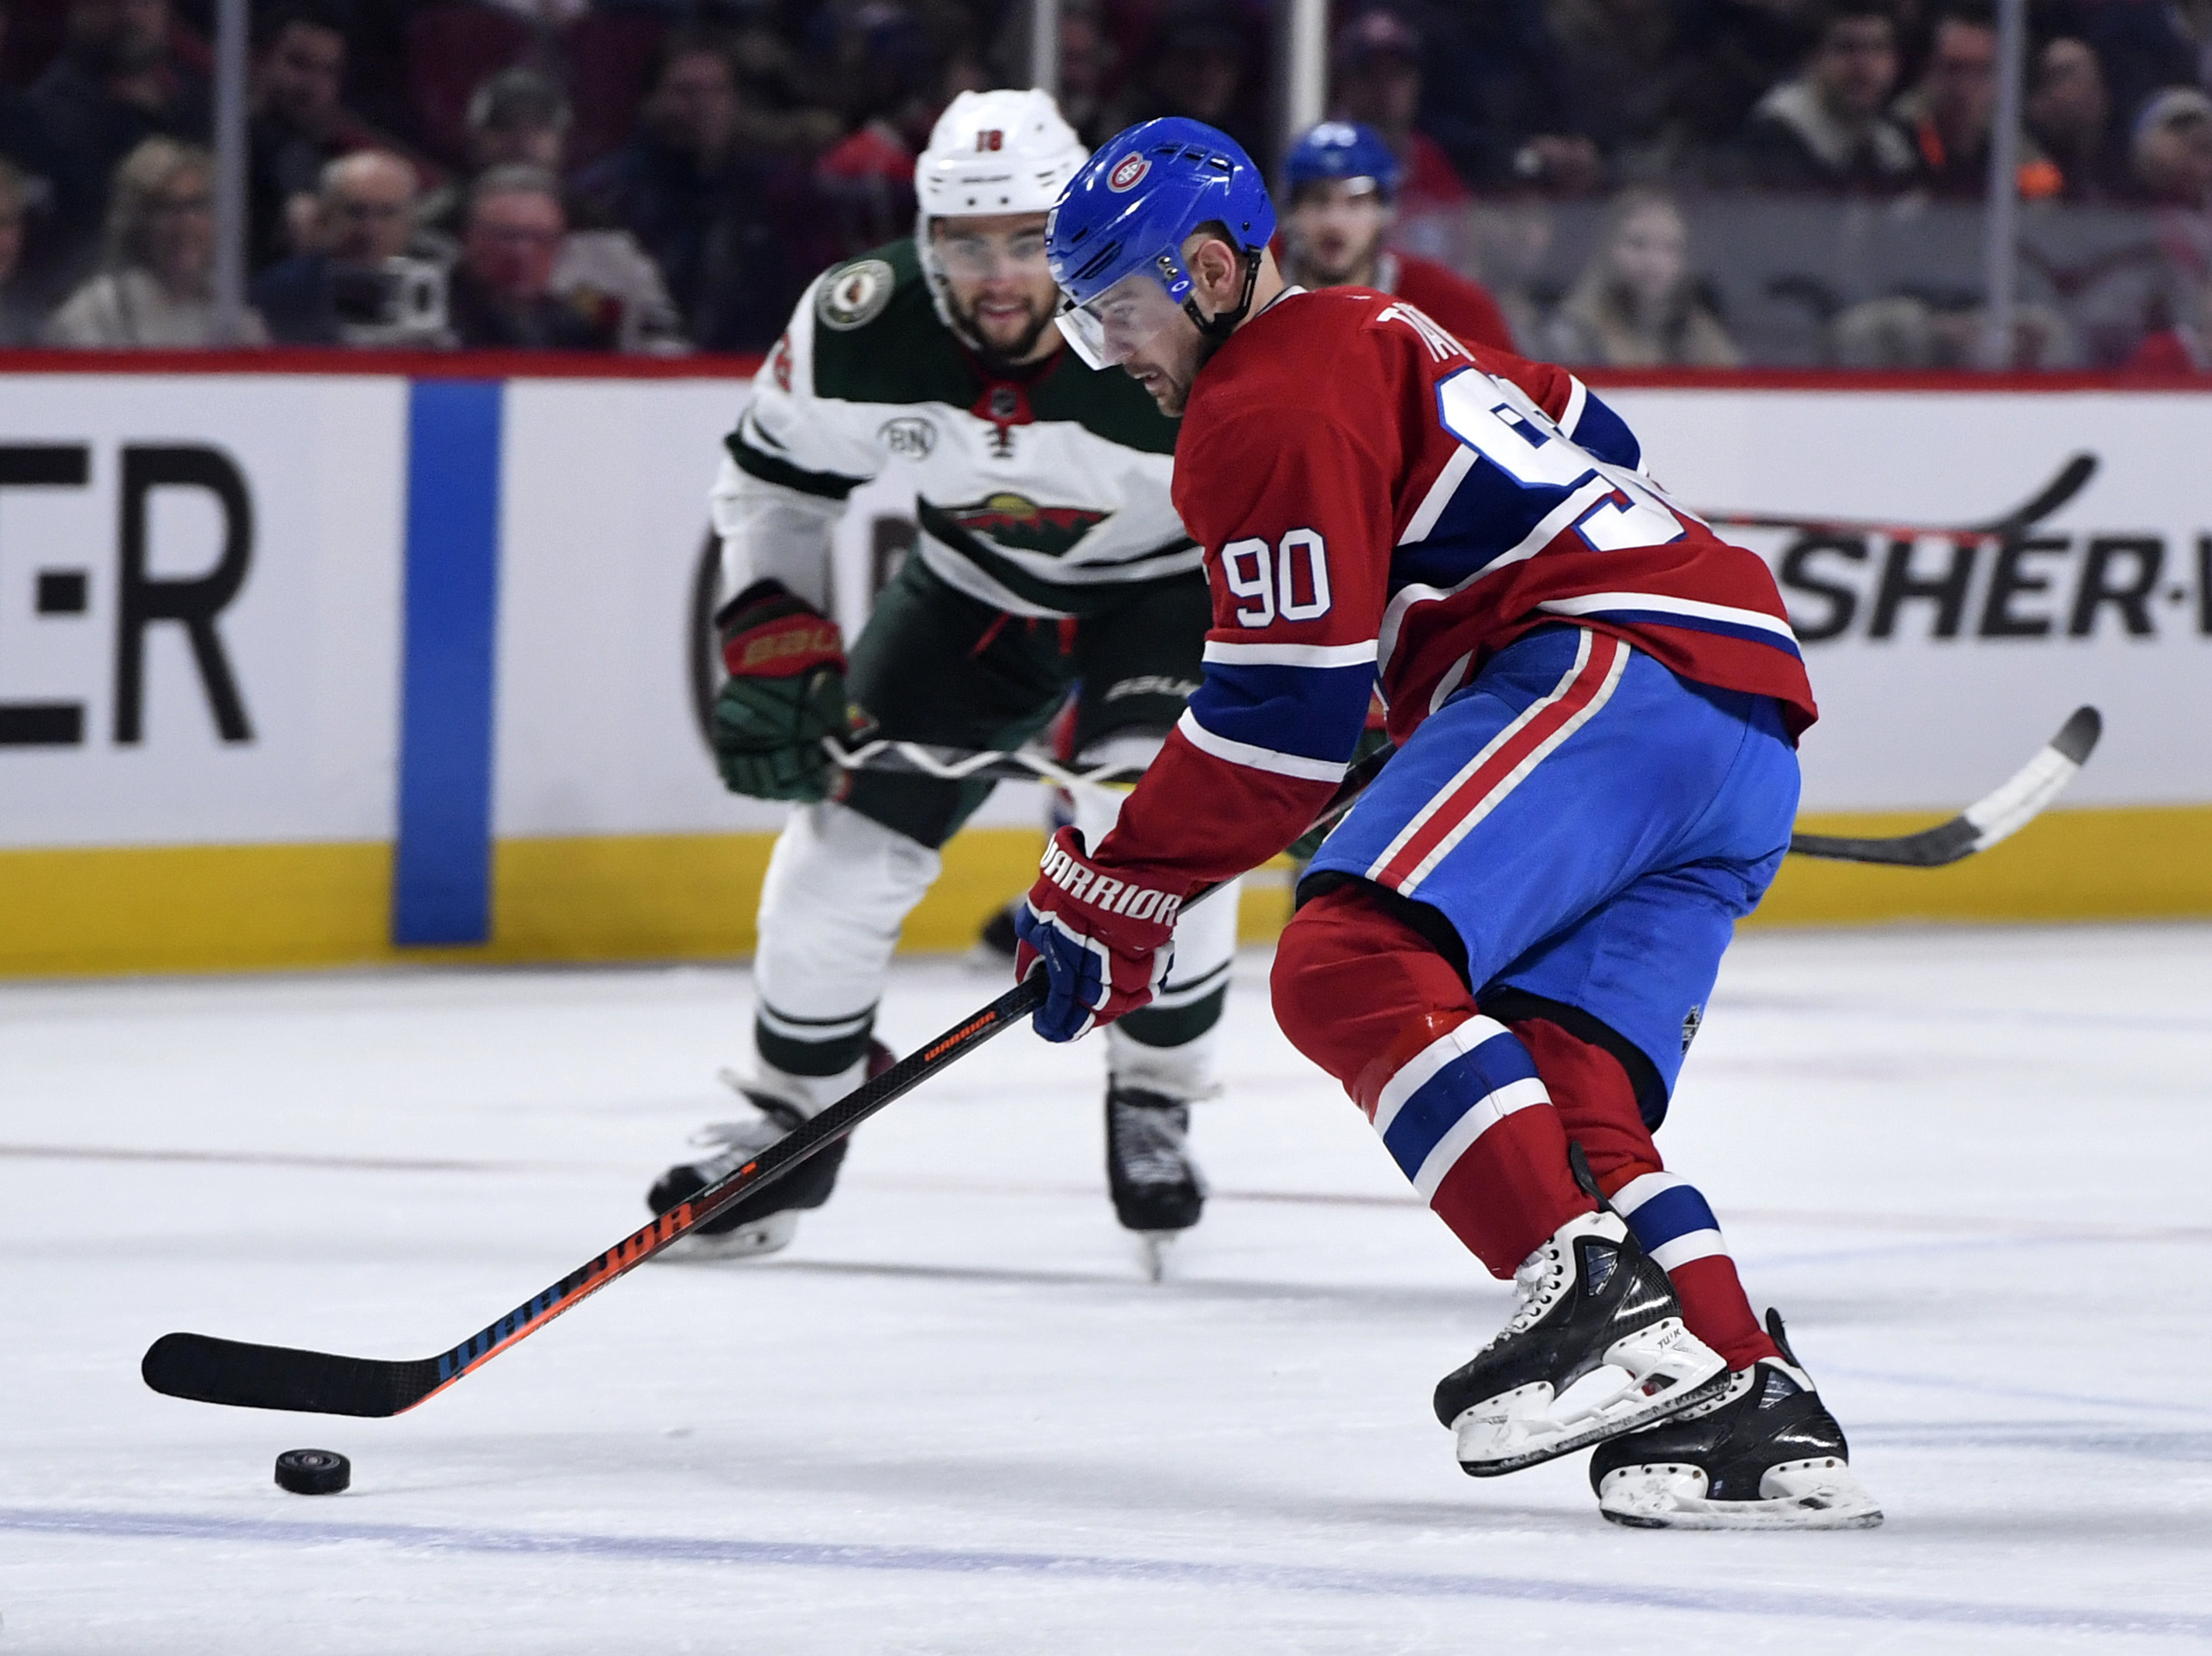 Game Preview: Minnesota Wild vs. Montreal Canadiens 10/20/19 @ 4:00PM CST at Xcel Energy Center